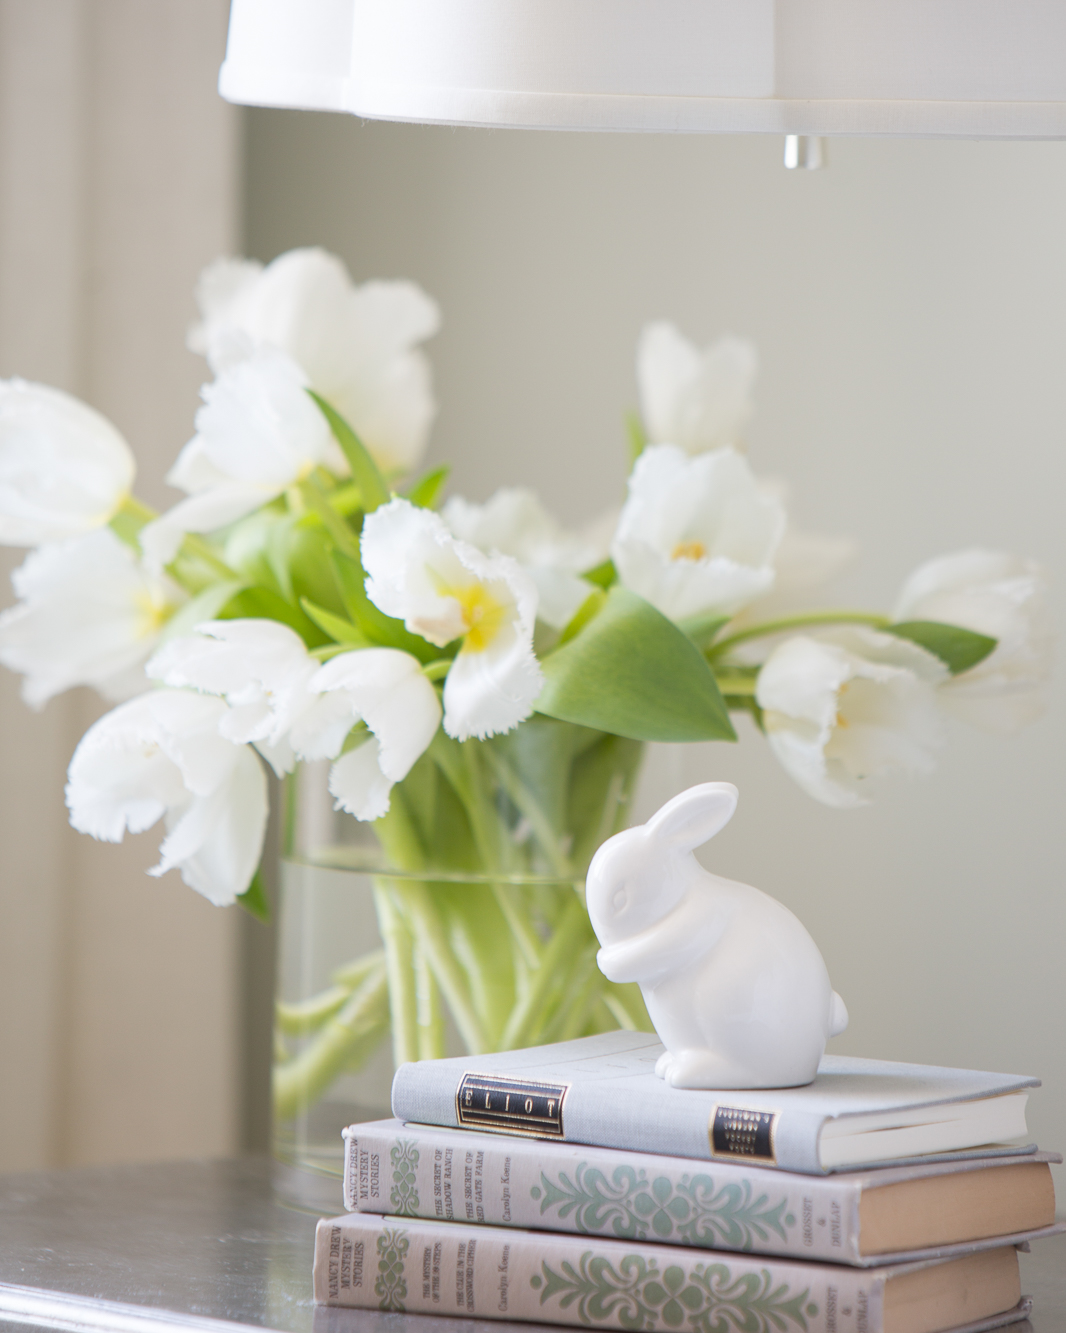 White bunny statue sitting on books, on a side table next to white tulips.